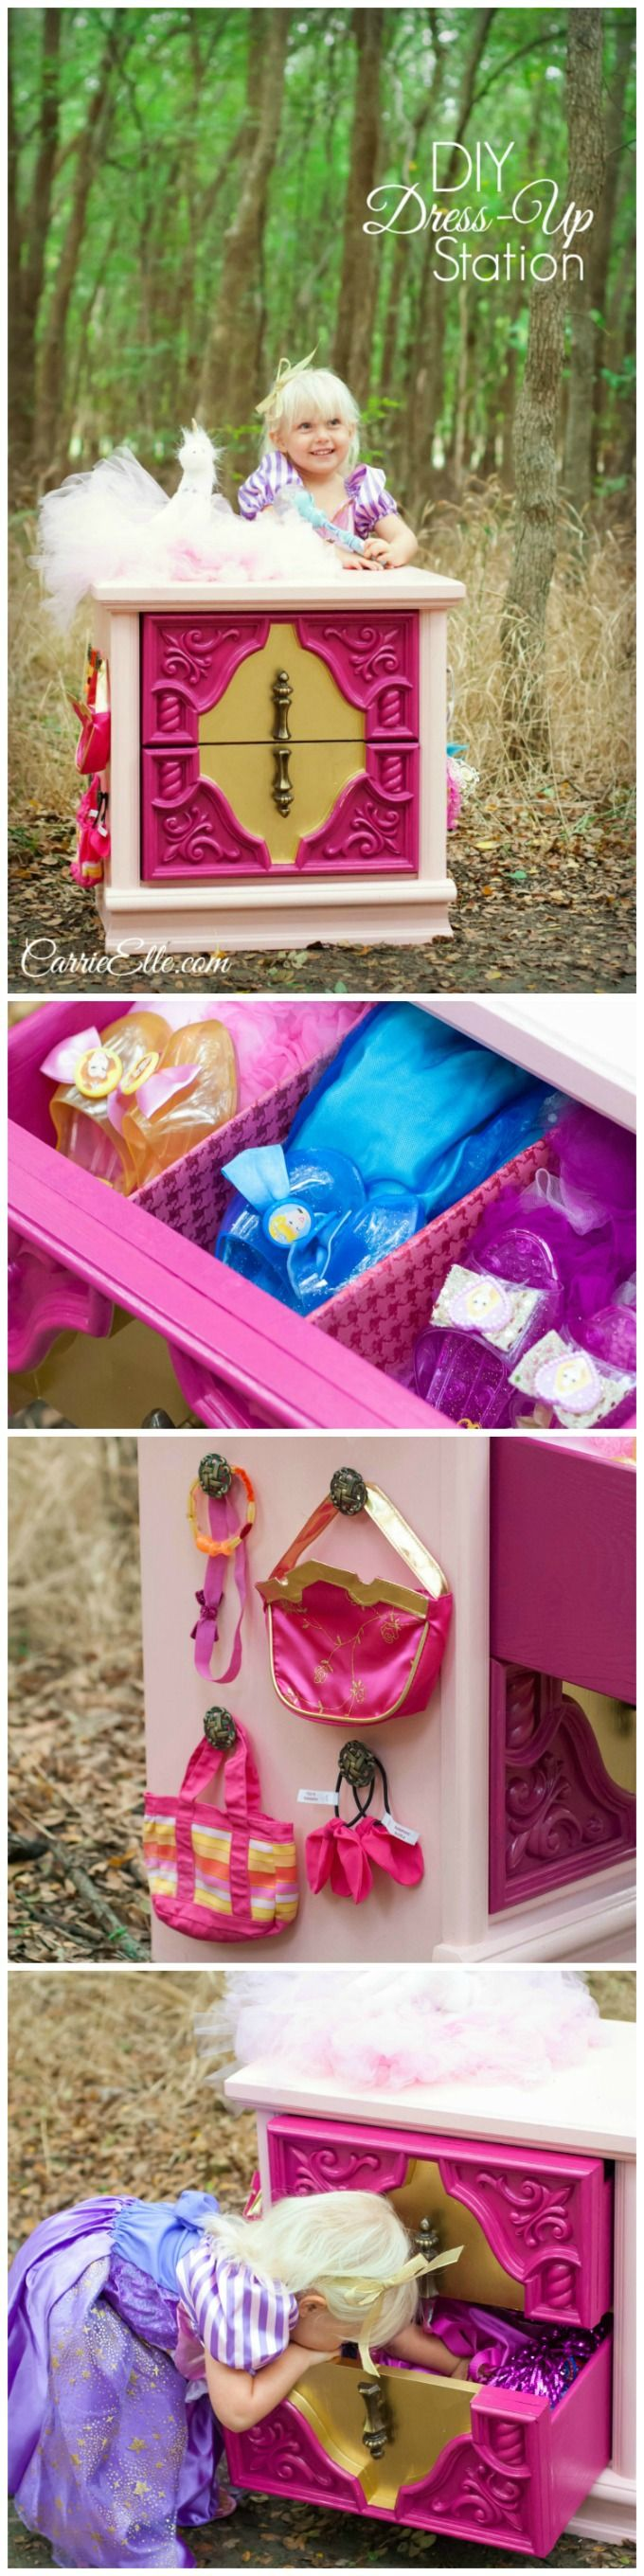 Need a place to put alllllll the dress-up clothes? This nightstand was converted into a dress-up station, inspired by Sleeping Beauty. It keeps all of our dress-up clothes organized and in one place! Be sure to check out the fun features inside and see how we made it functional *and* pretty!